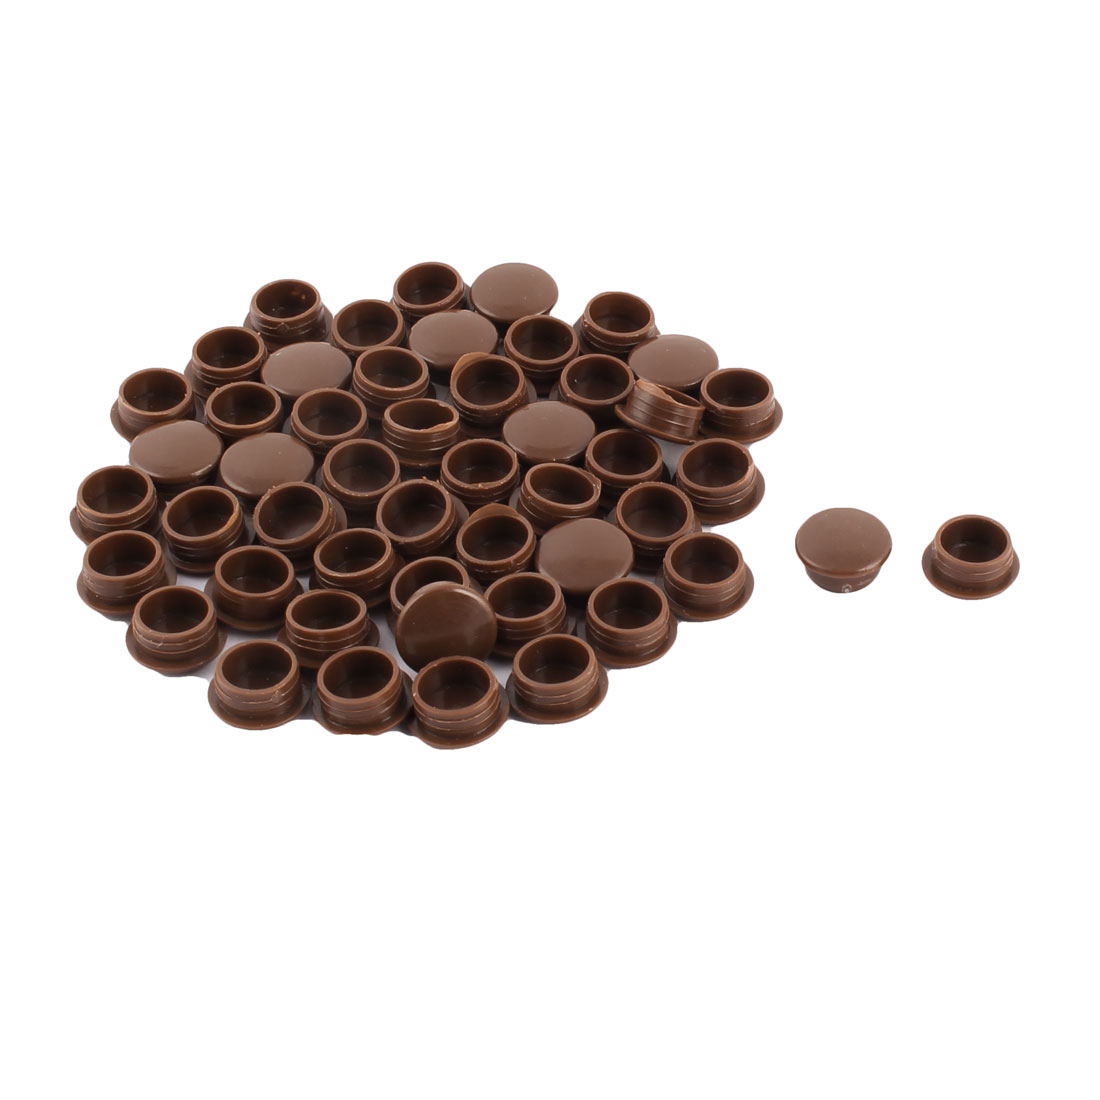 Plastic Flat Type Chair Leg Caps Tube Insert Coffee Color 12mm Fit Dia 50pcs